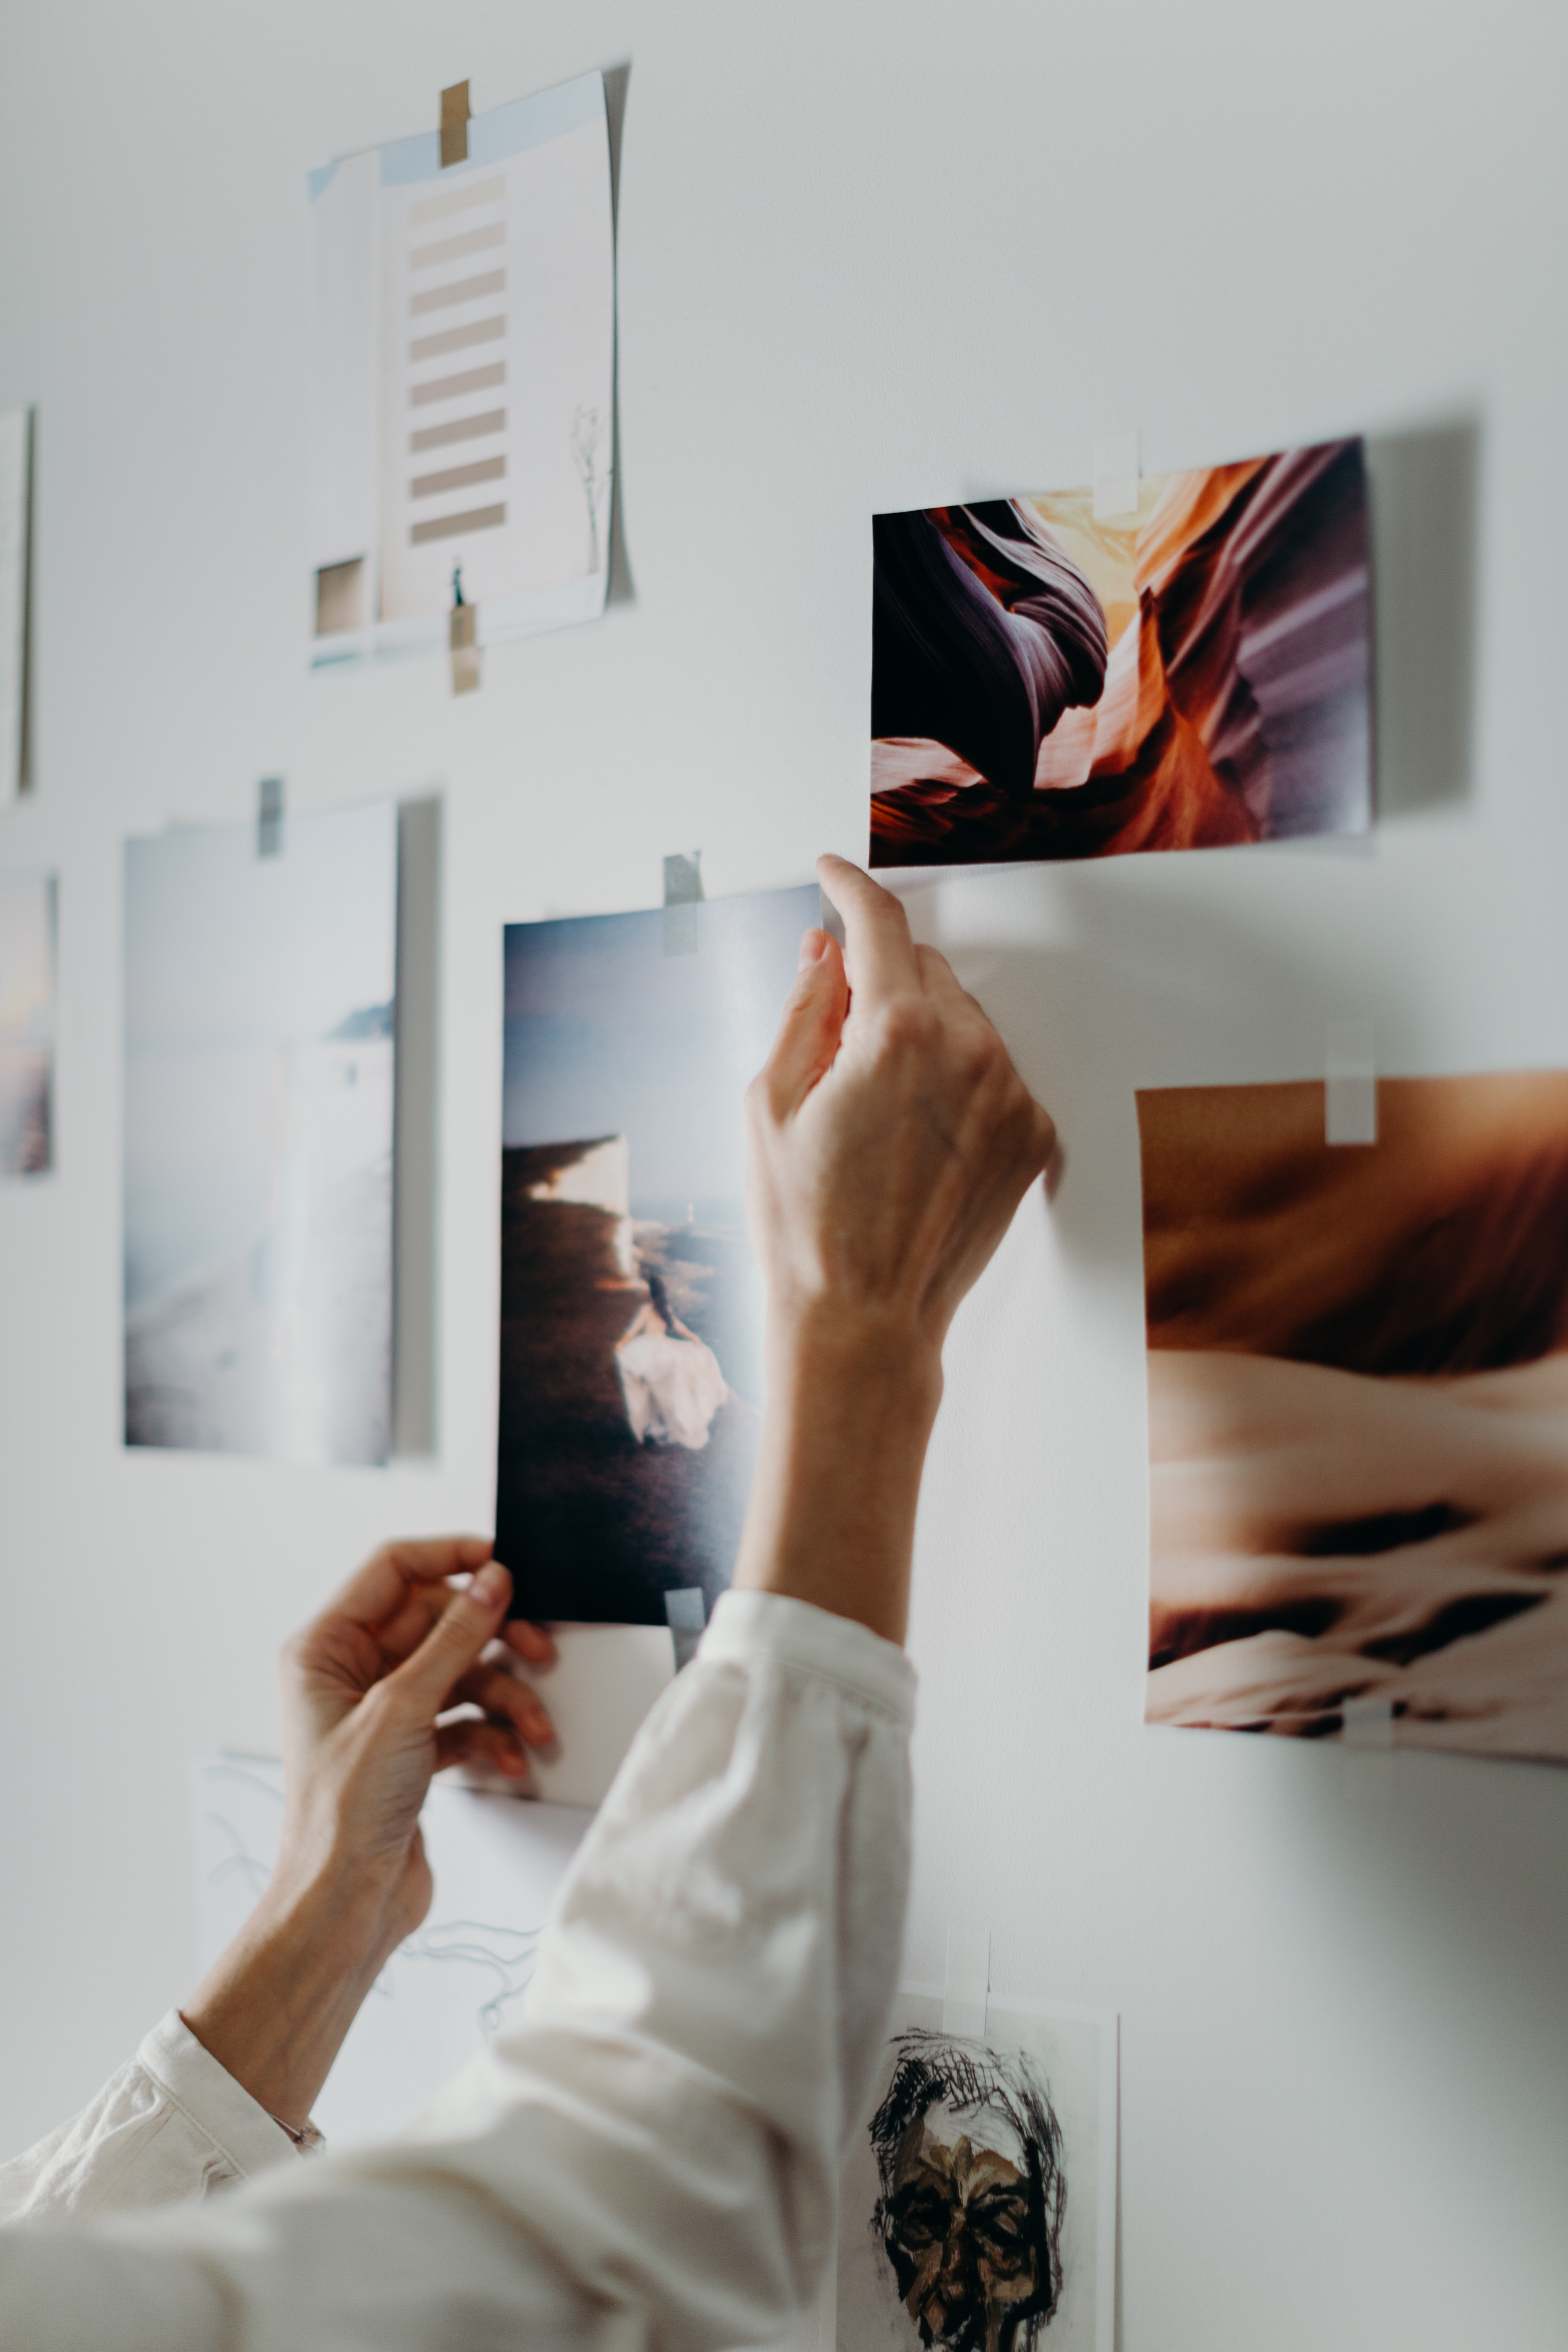 Vision Boards: Why You Should Make One & How To Do It